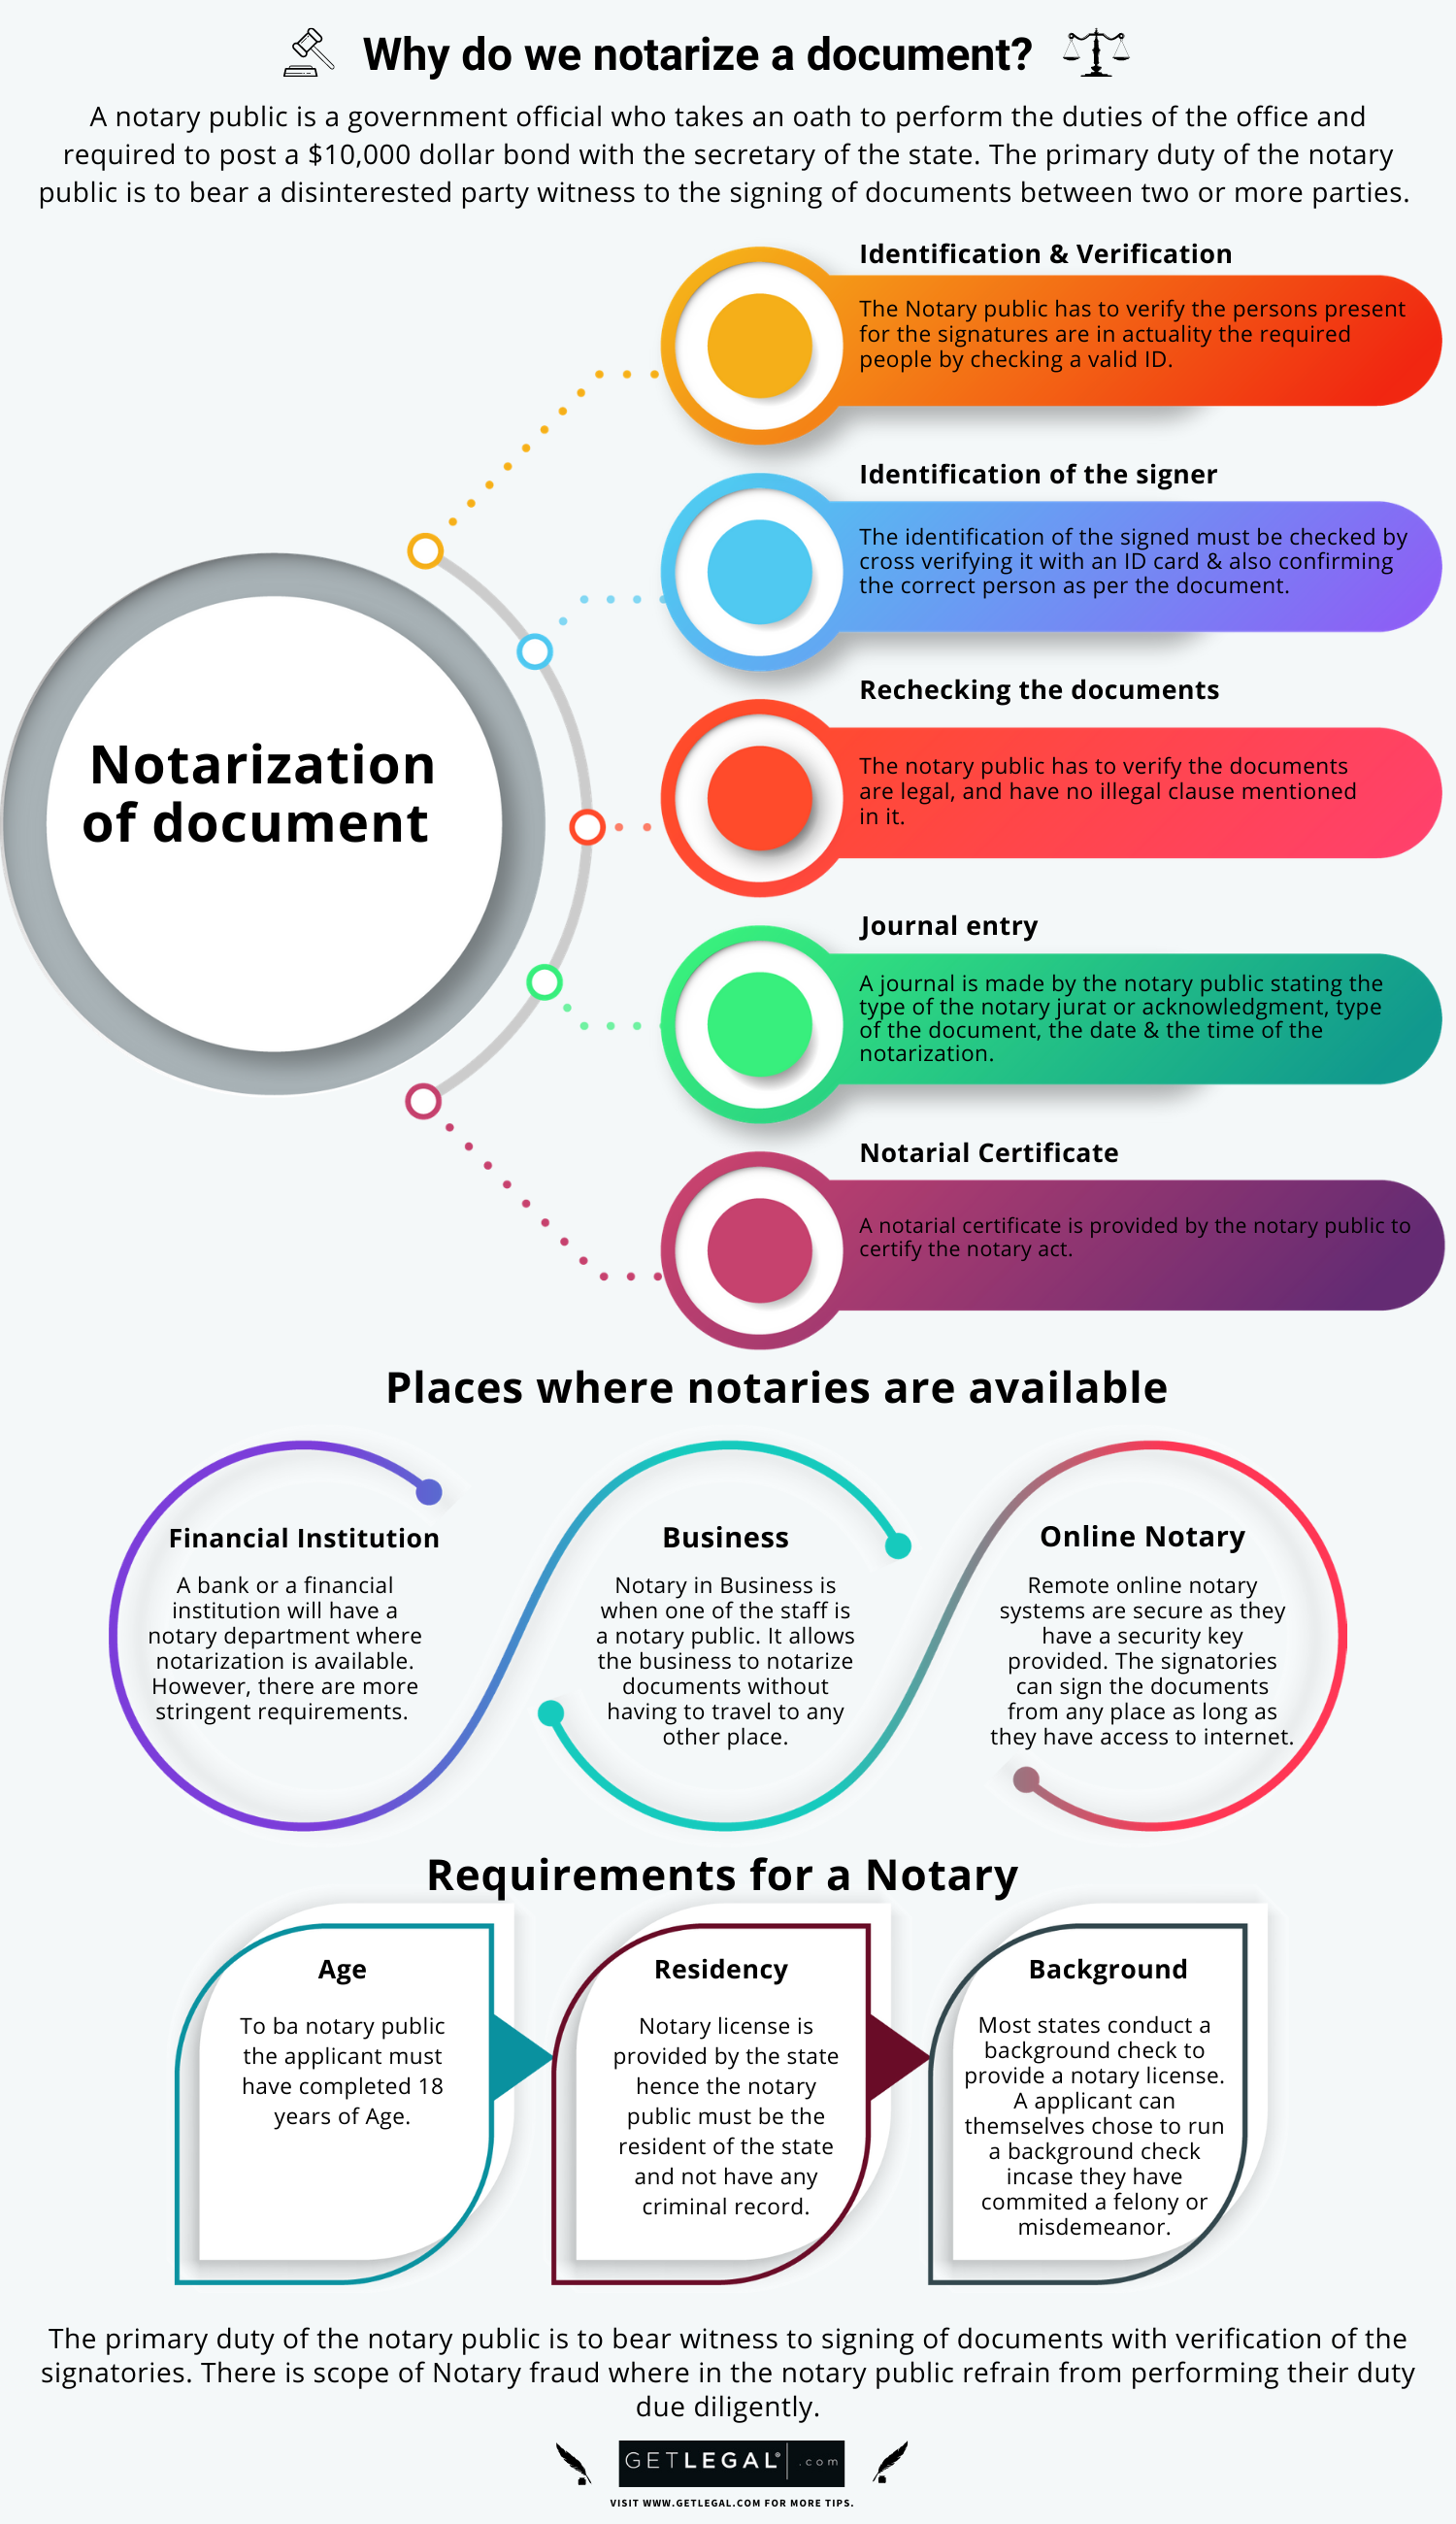 WHY DO WE NOTARIZE DOCUMENTS Infographic